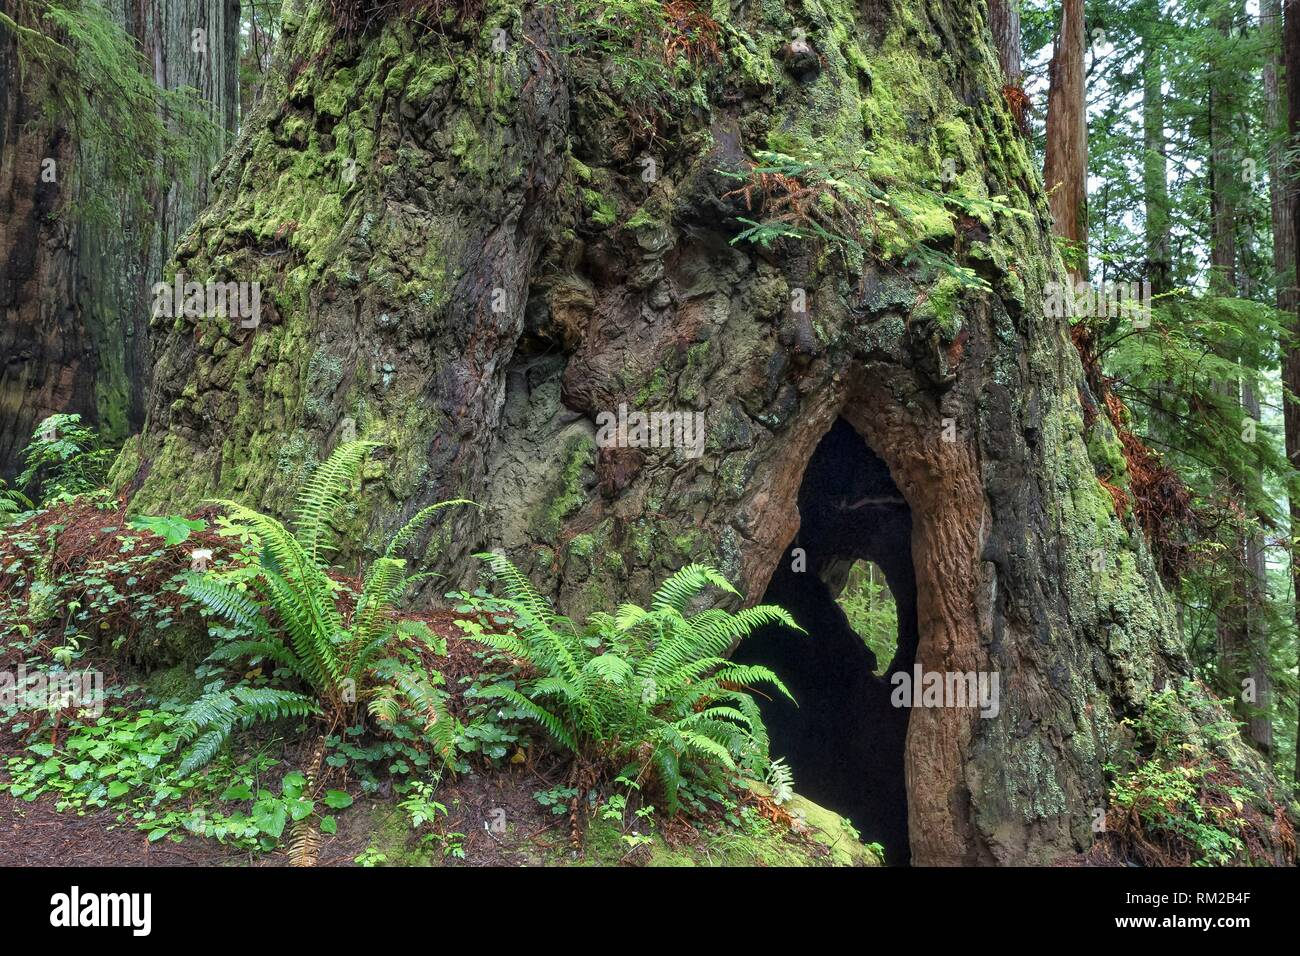 A Cal Barrel Road moss covered giant redwood tree with a hallow center gives a glimpse of a small tree on the opposite side in Prarie Creek Redwoods - Stock Image